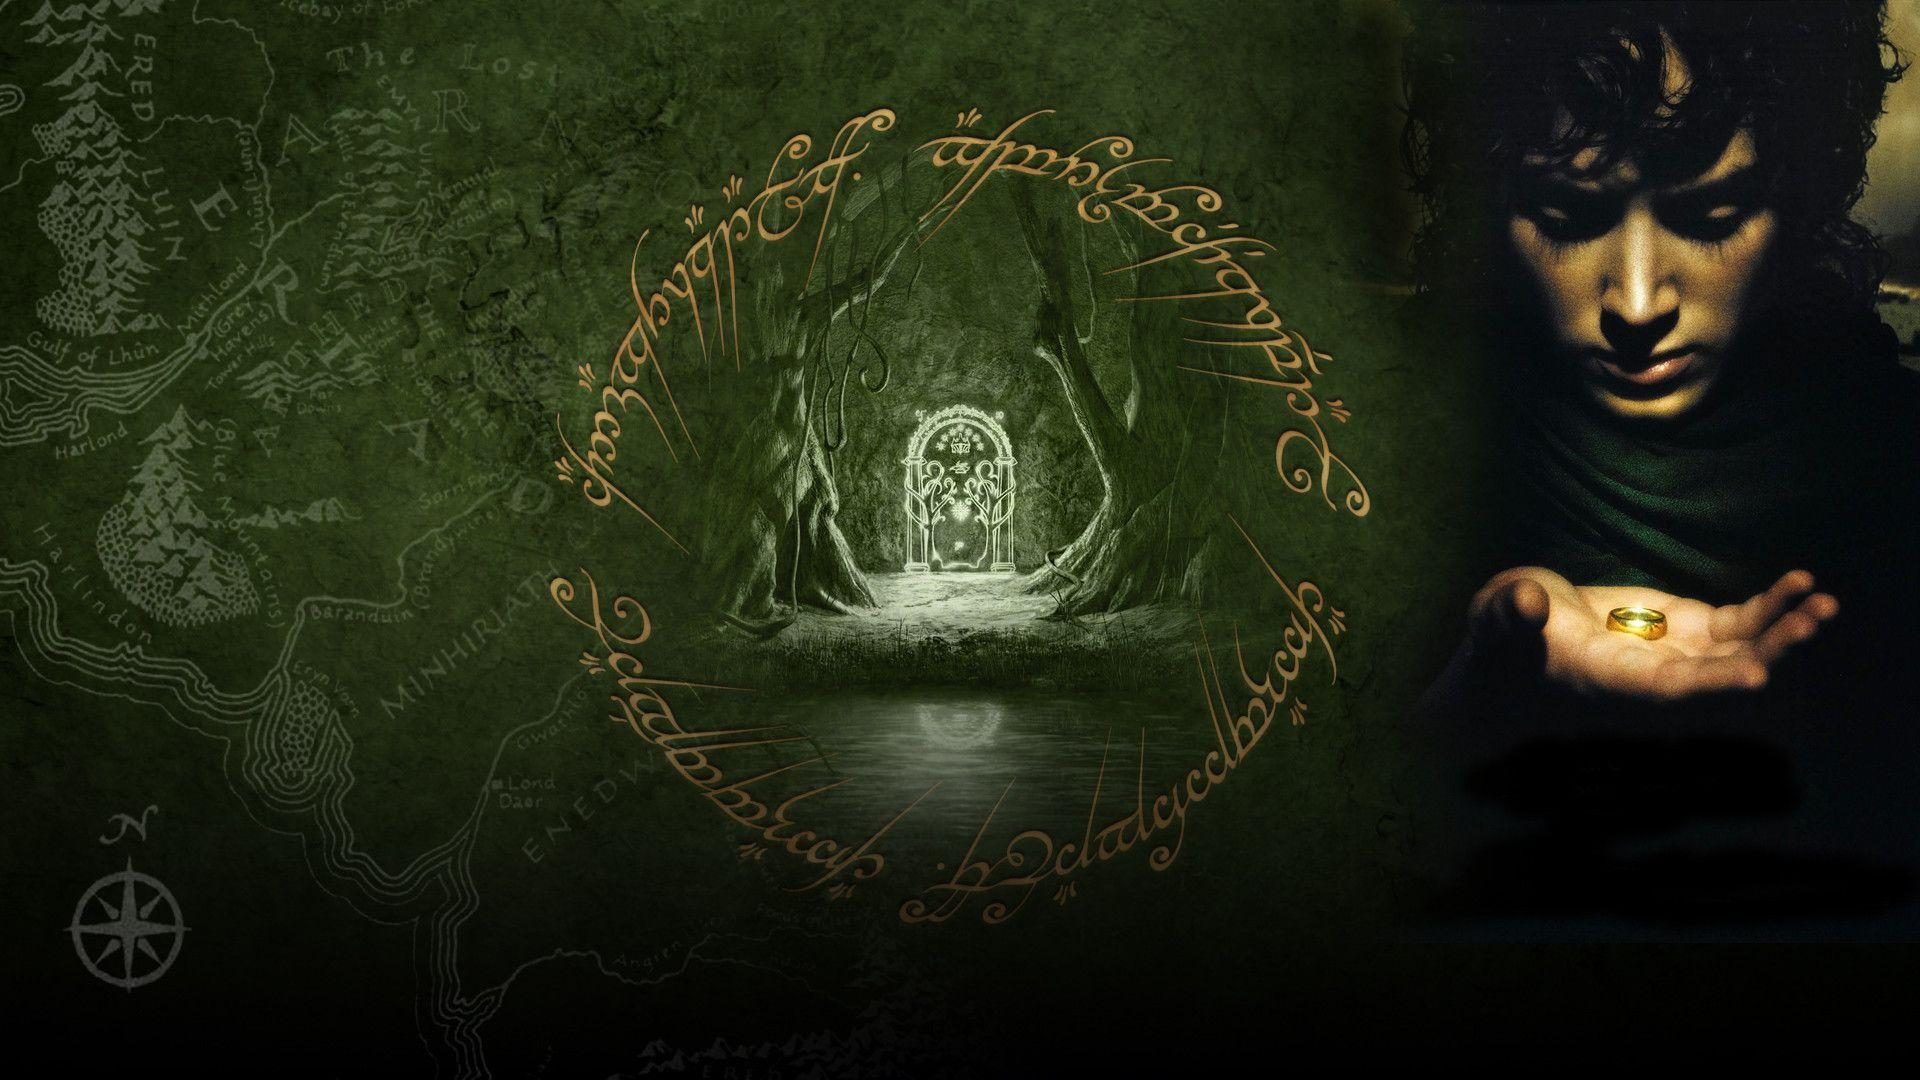 lotr wallpaper hd - photo #16